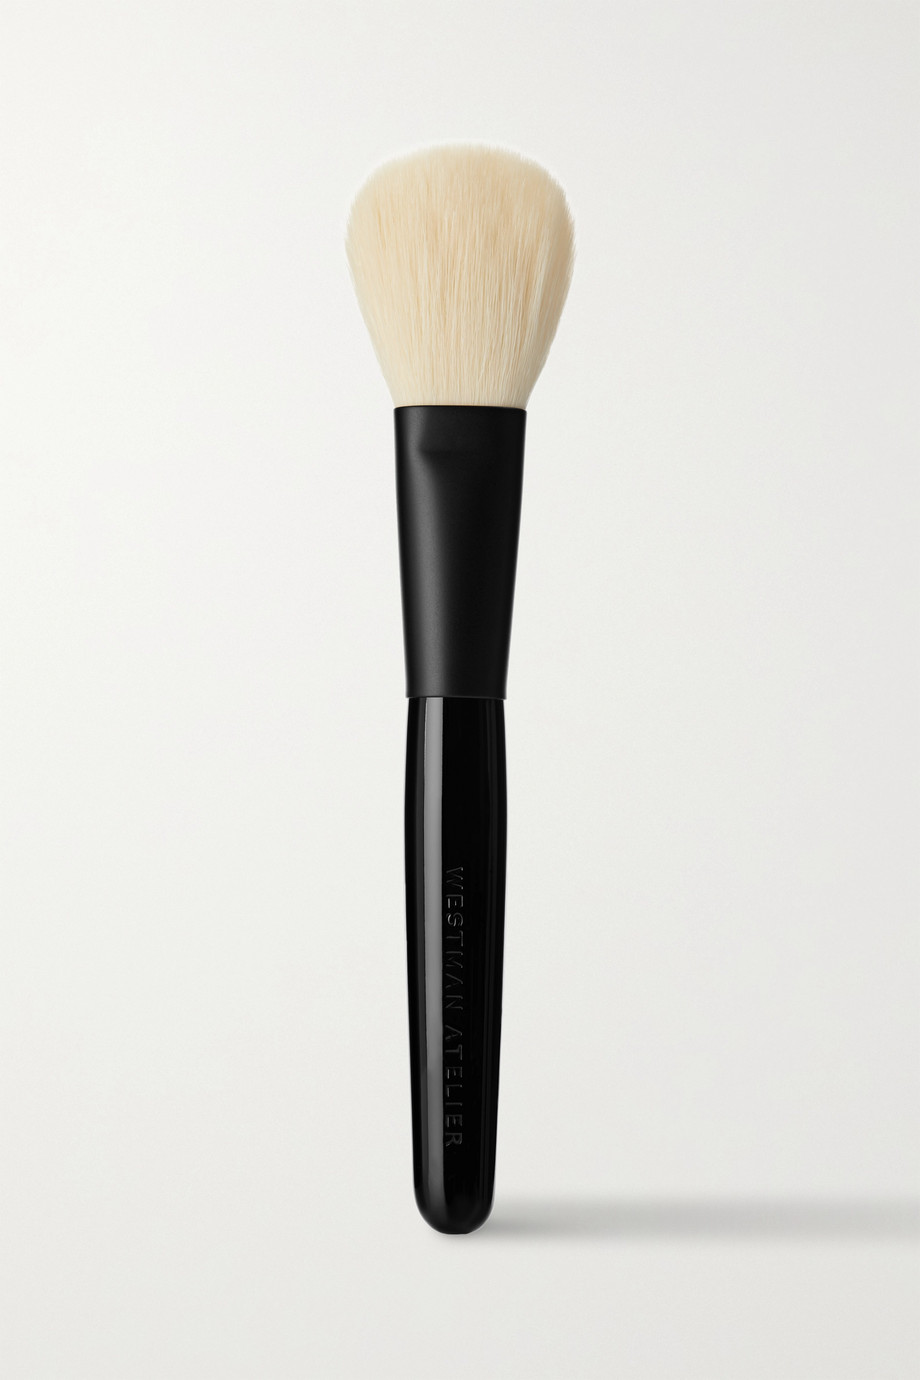 Westman Atelier Powder Brush